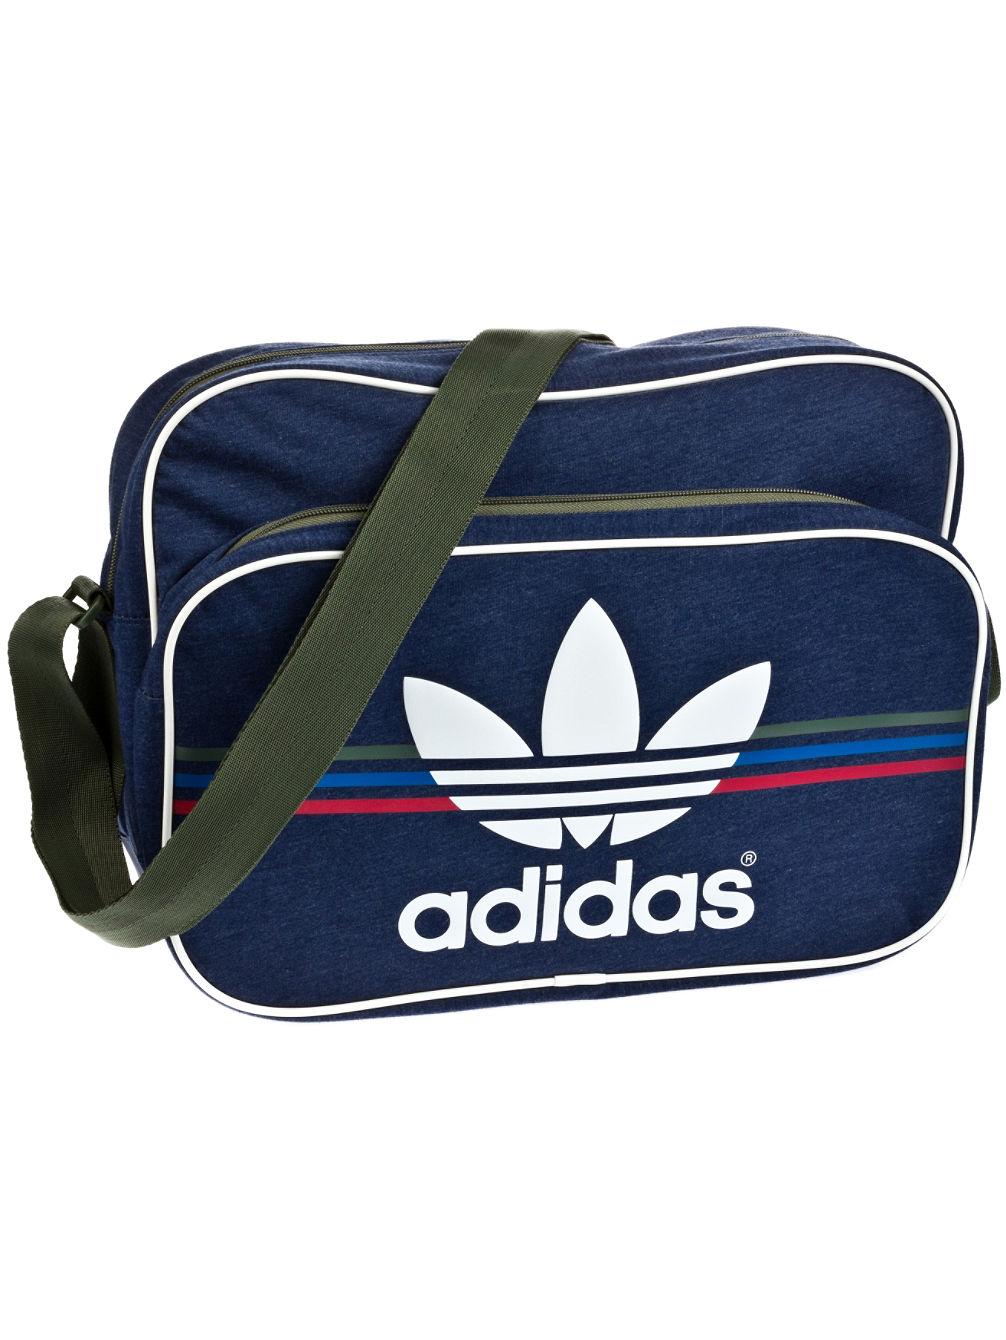 9a73384ecca6 Buy adidas Originals Adicolor Airliner Jersey Bag online at blue ...